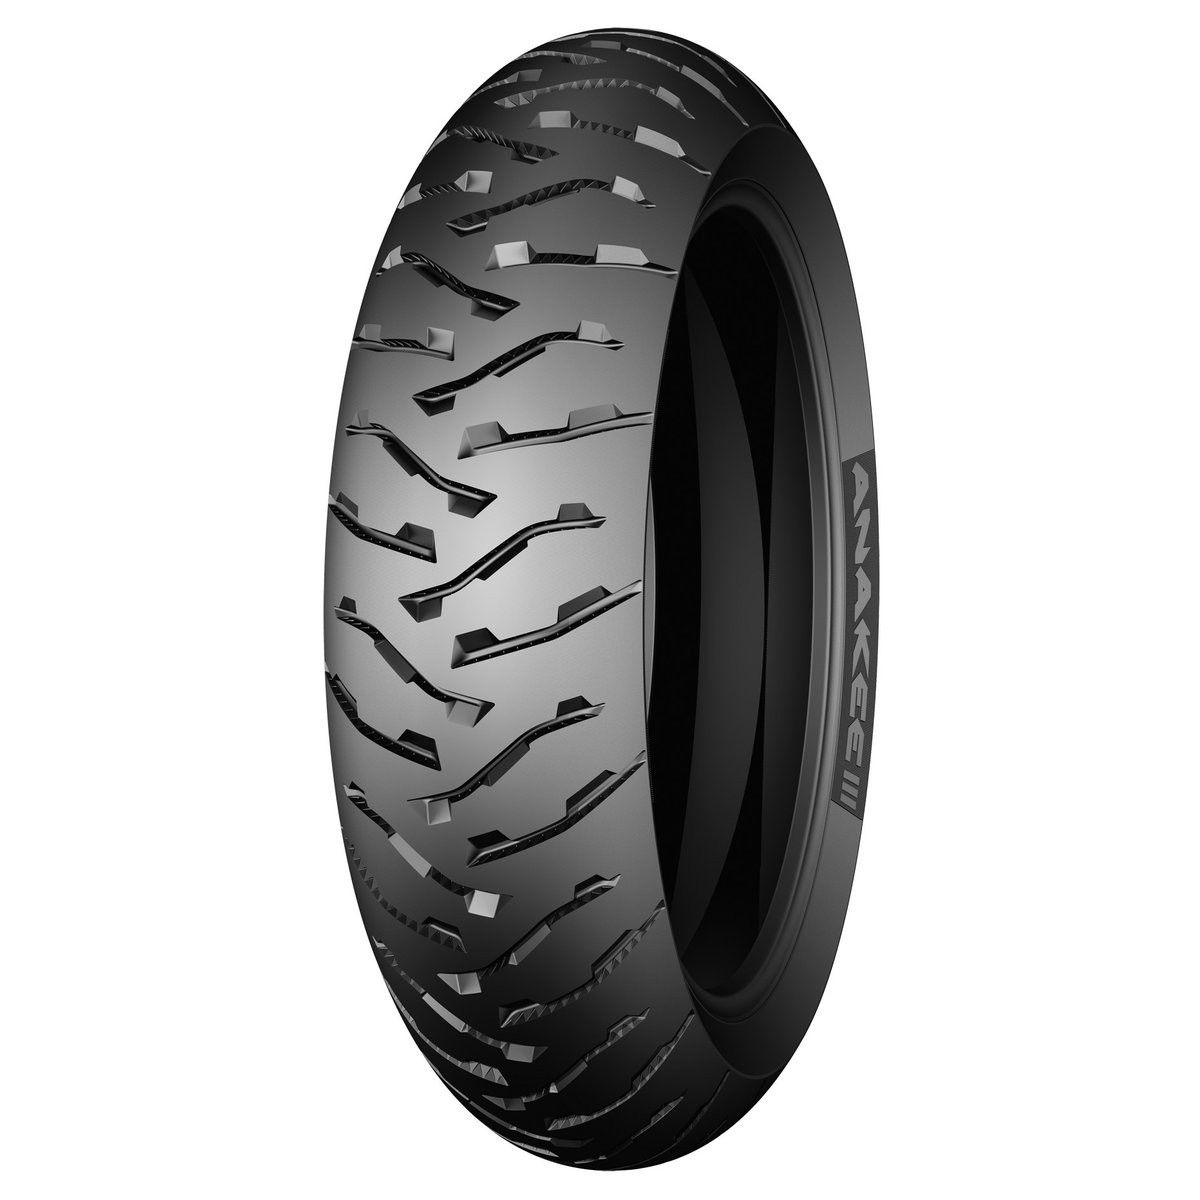 Моторезина задняя Michelin 667397 ANAKEE 3 размер 140/80 R17 для мотоциклов